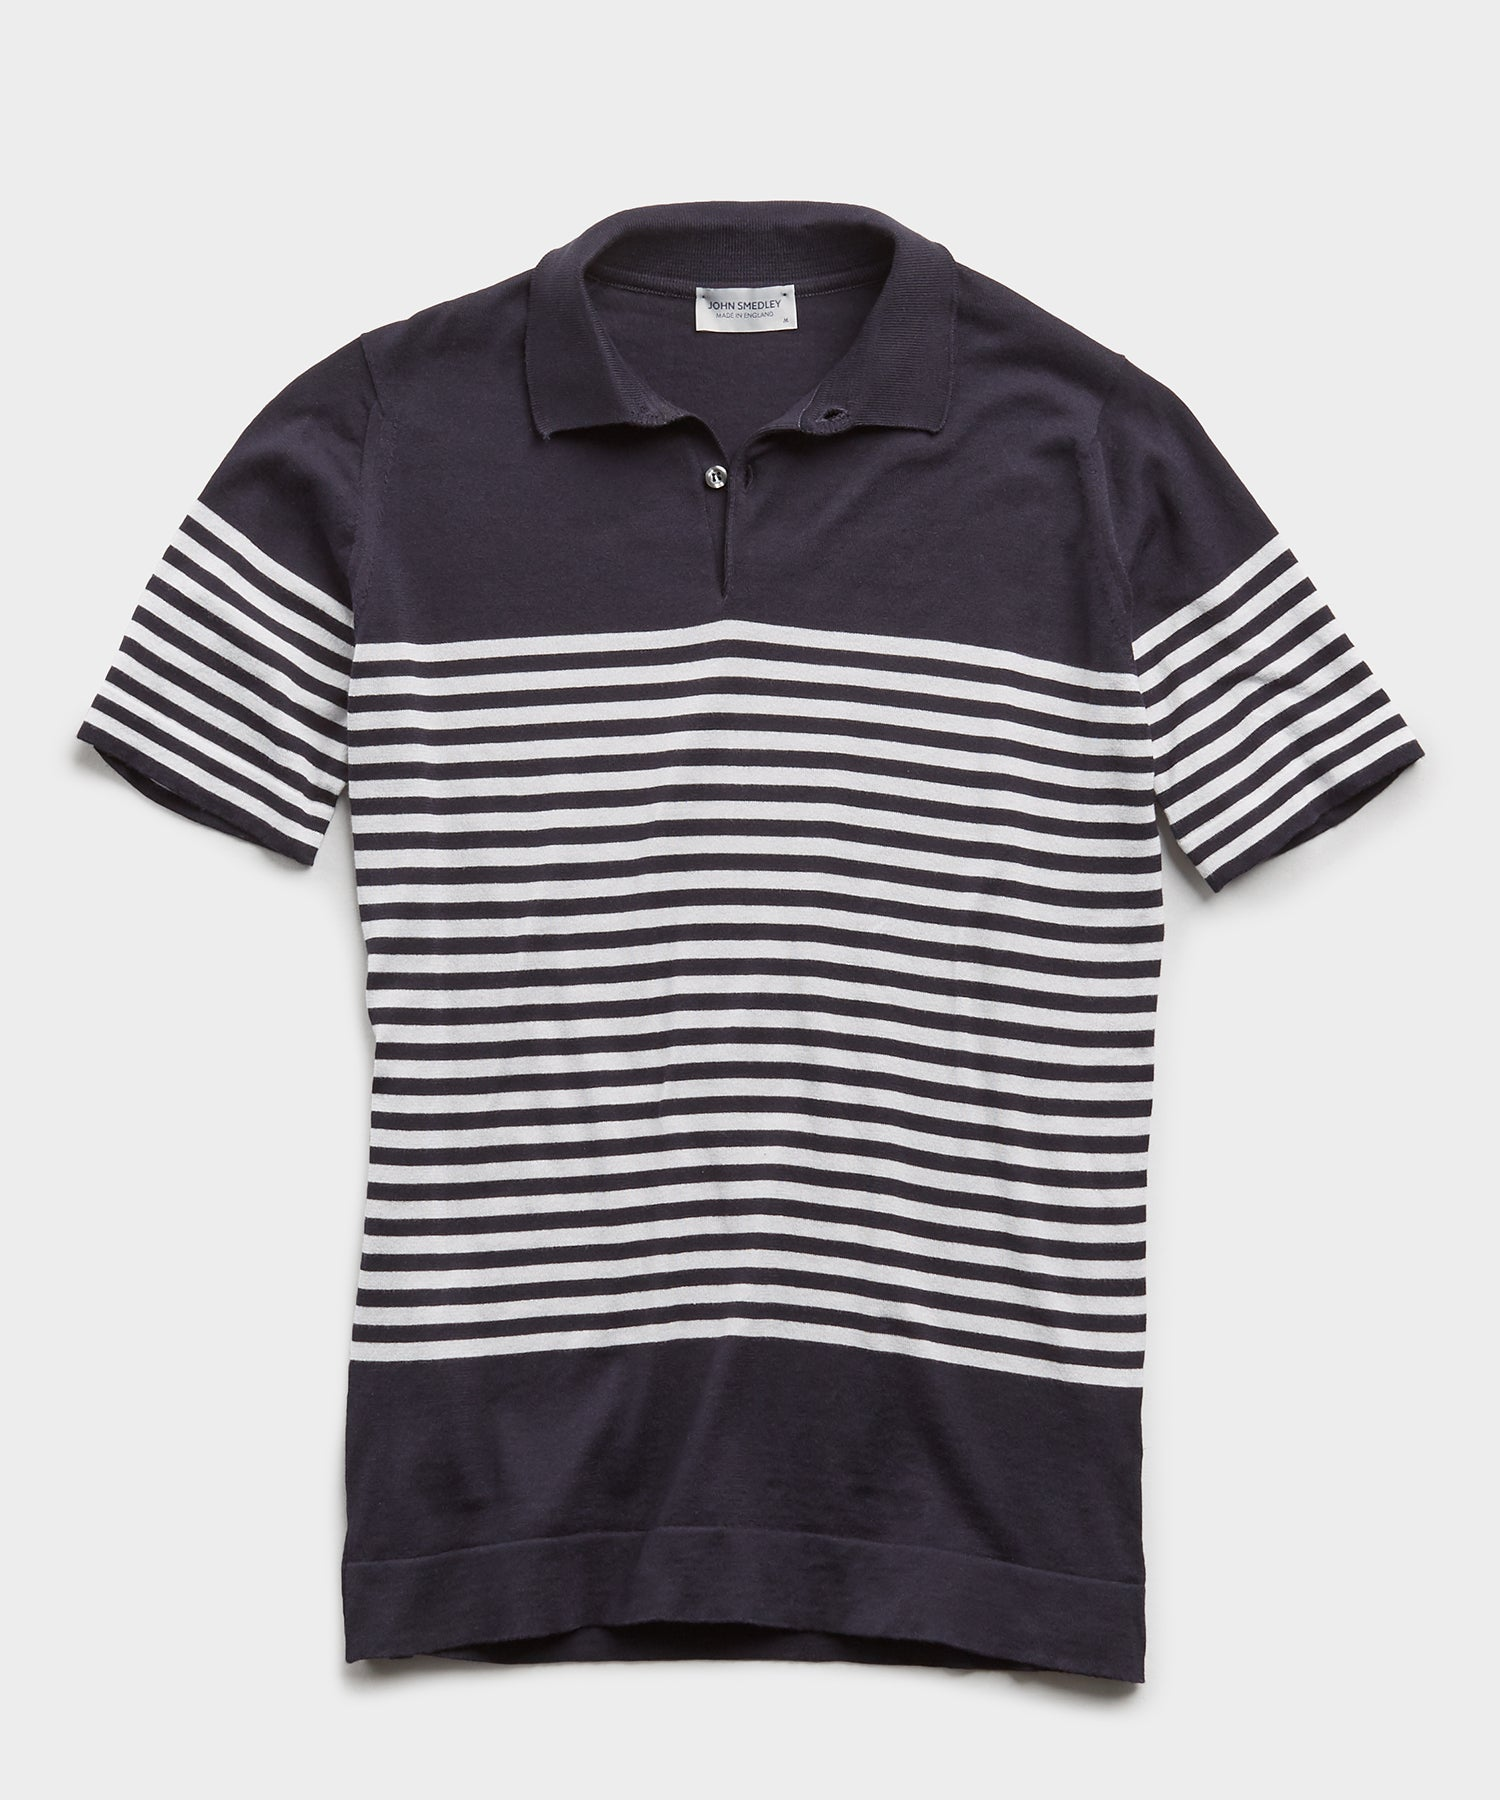 John Smedley Striped Sea Island Cotton Polo Sweater in Navy